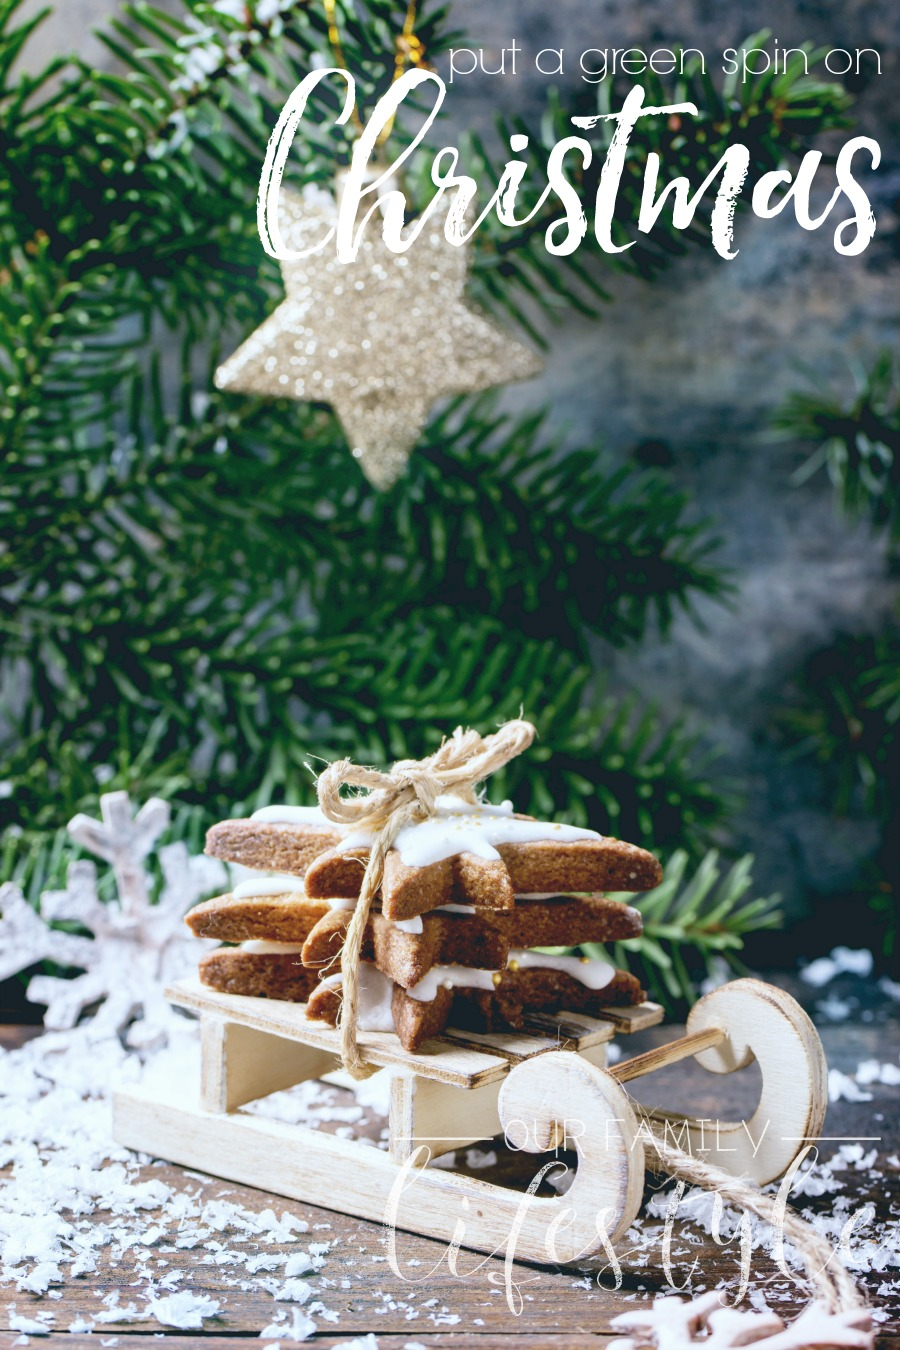 Smart Ways to Put a Green Spin on Your Christmas